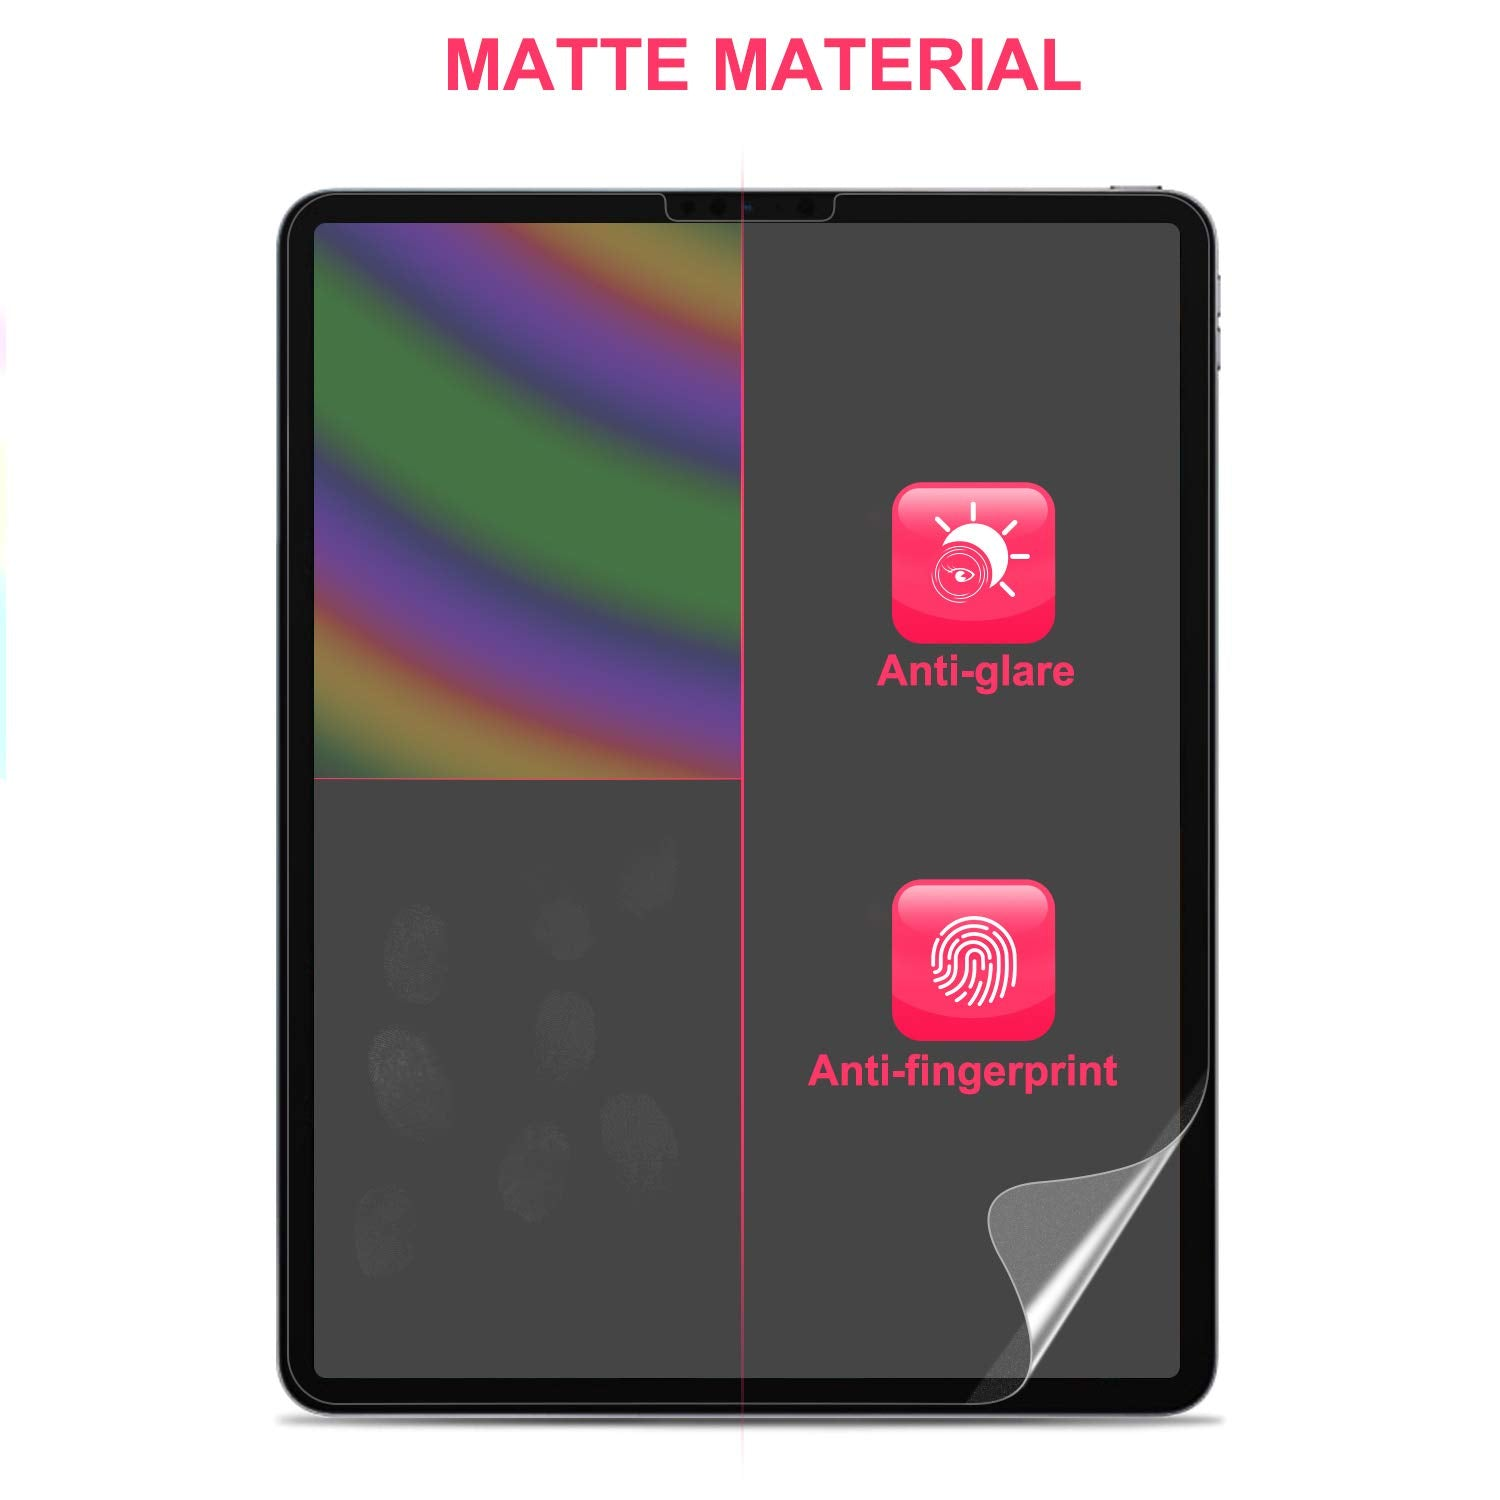 "New iPad Pro 12.9"" Screen Protector (2 Pack), SMAPP Premium PET Film [Anti-Glare] Matte Screen Protector for iPad Pro 12.9 inch 2018 Tablet Compatible [Face ID] [Apple Pencil] Function [Touch Sensitive]"